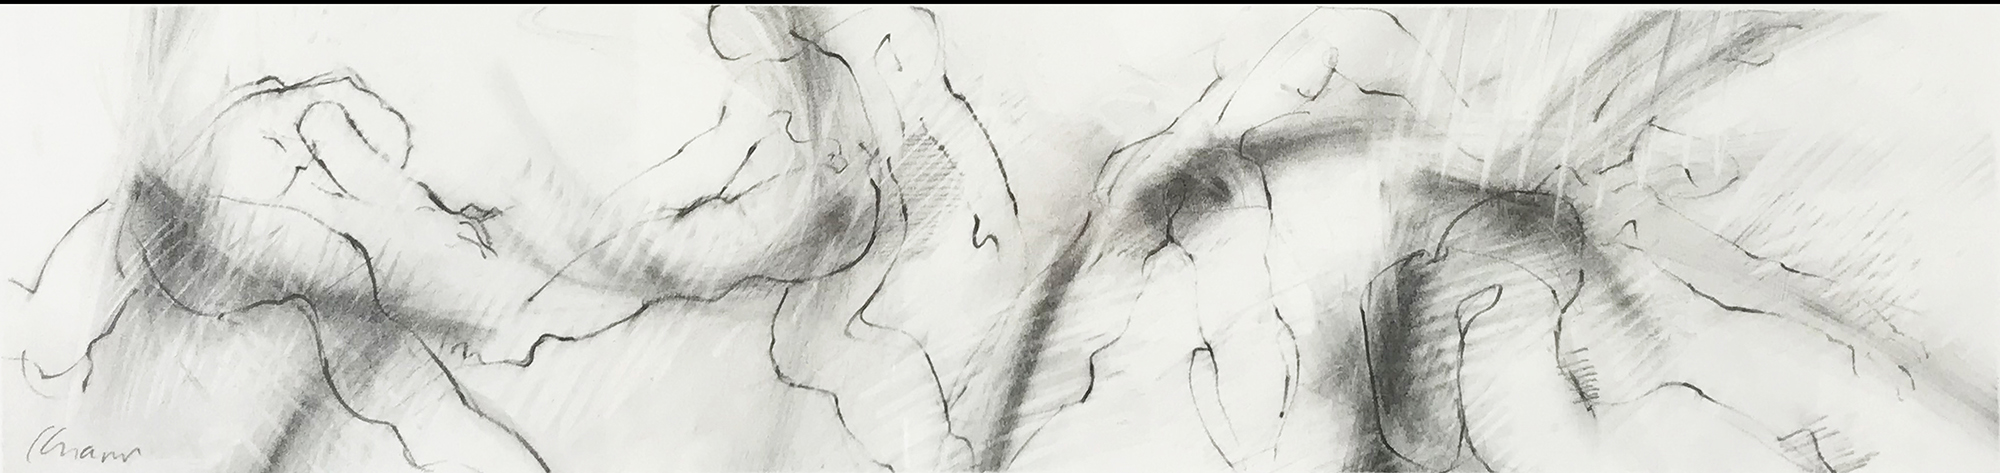 Cynthia-Knapp-Untitled-Figures-6281-Graphite-on-Paper-